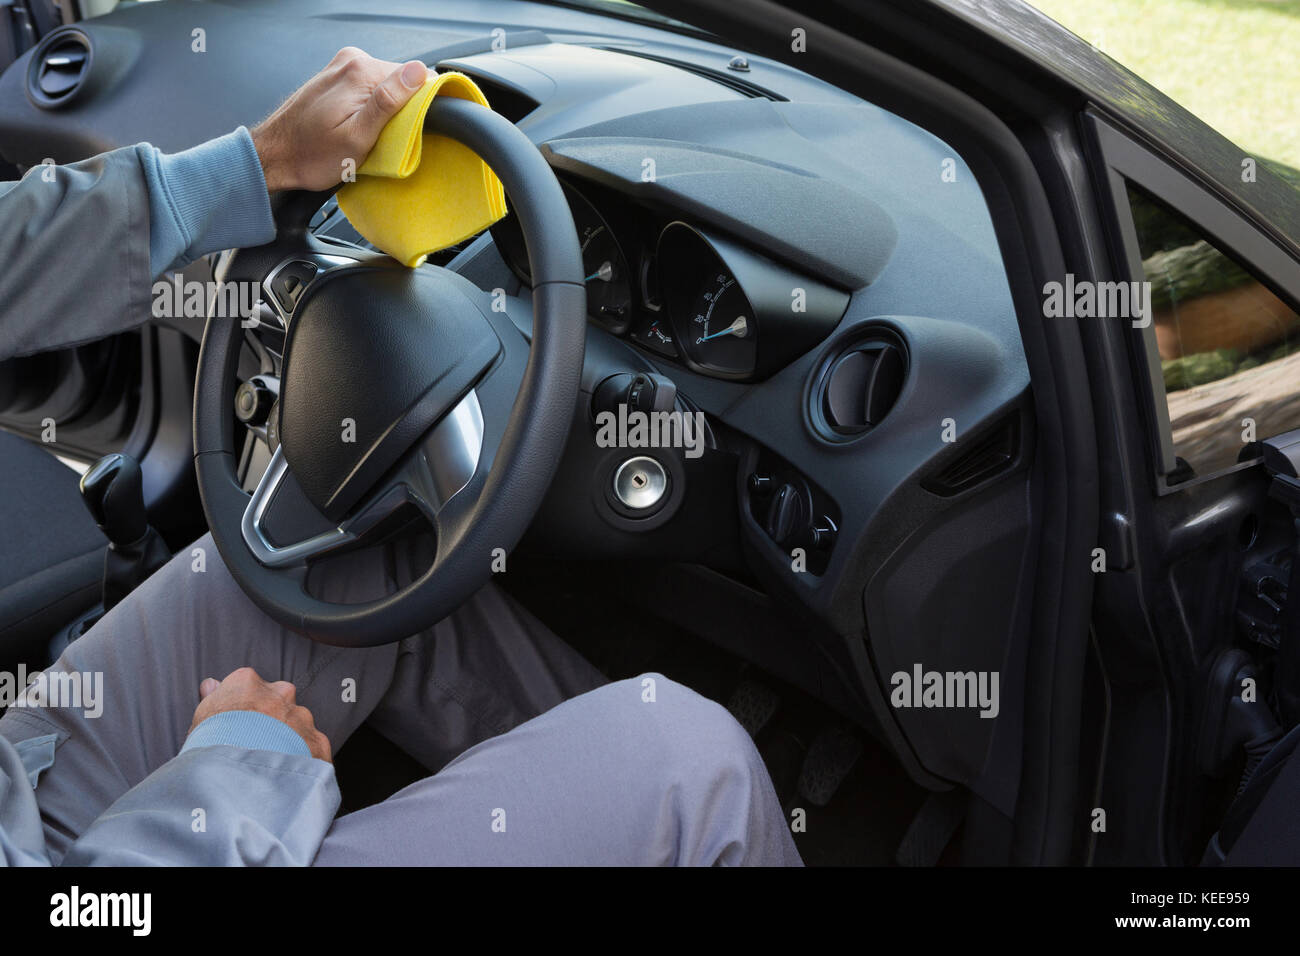 Cleaning car interior stock photos cleaning car interior - Vehicle interior cleaning service ...